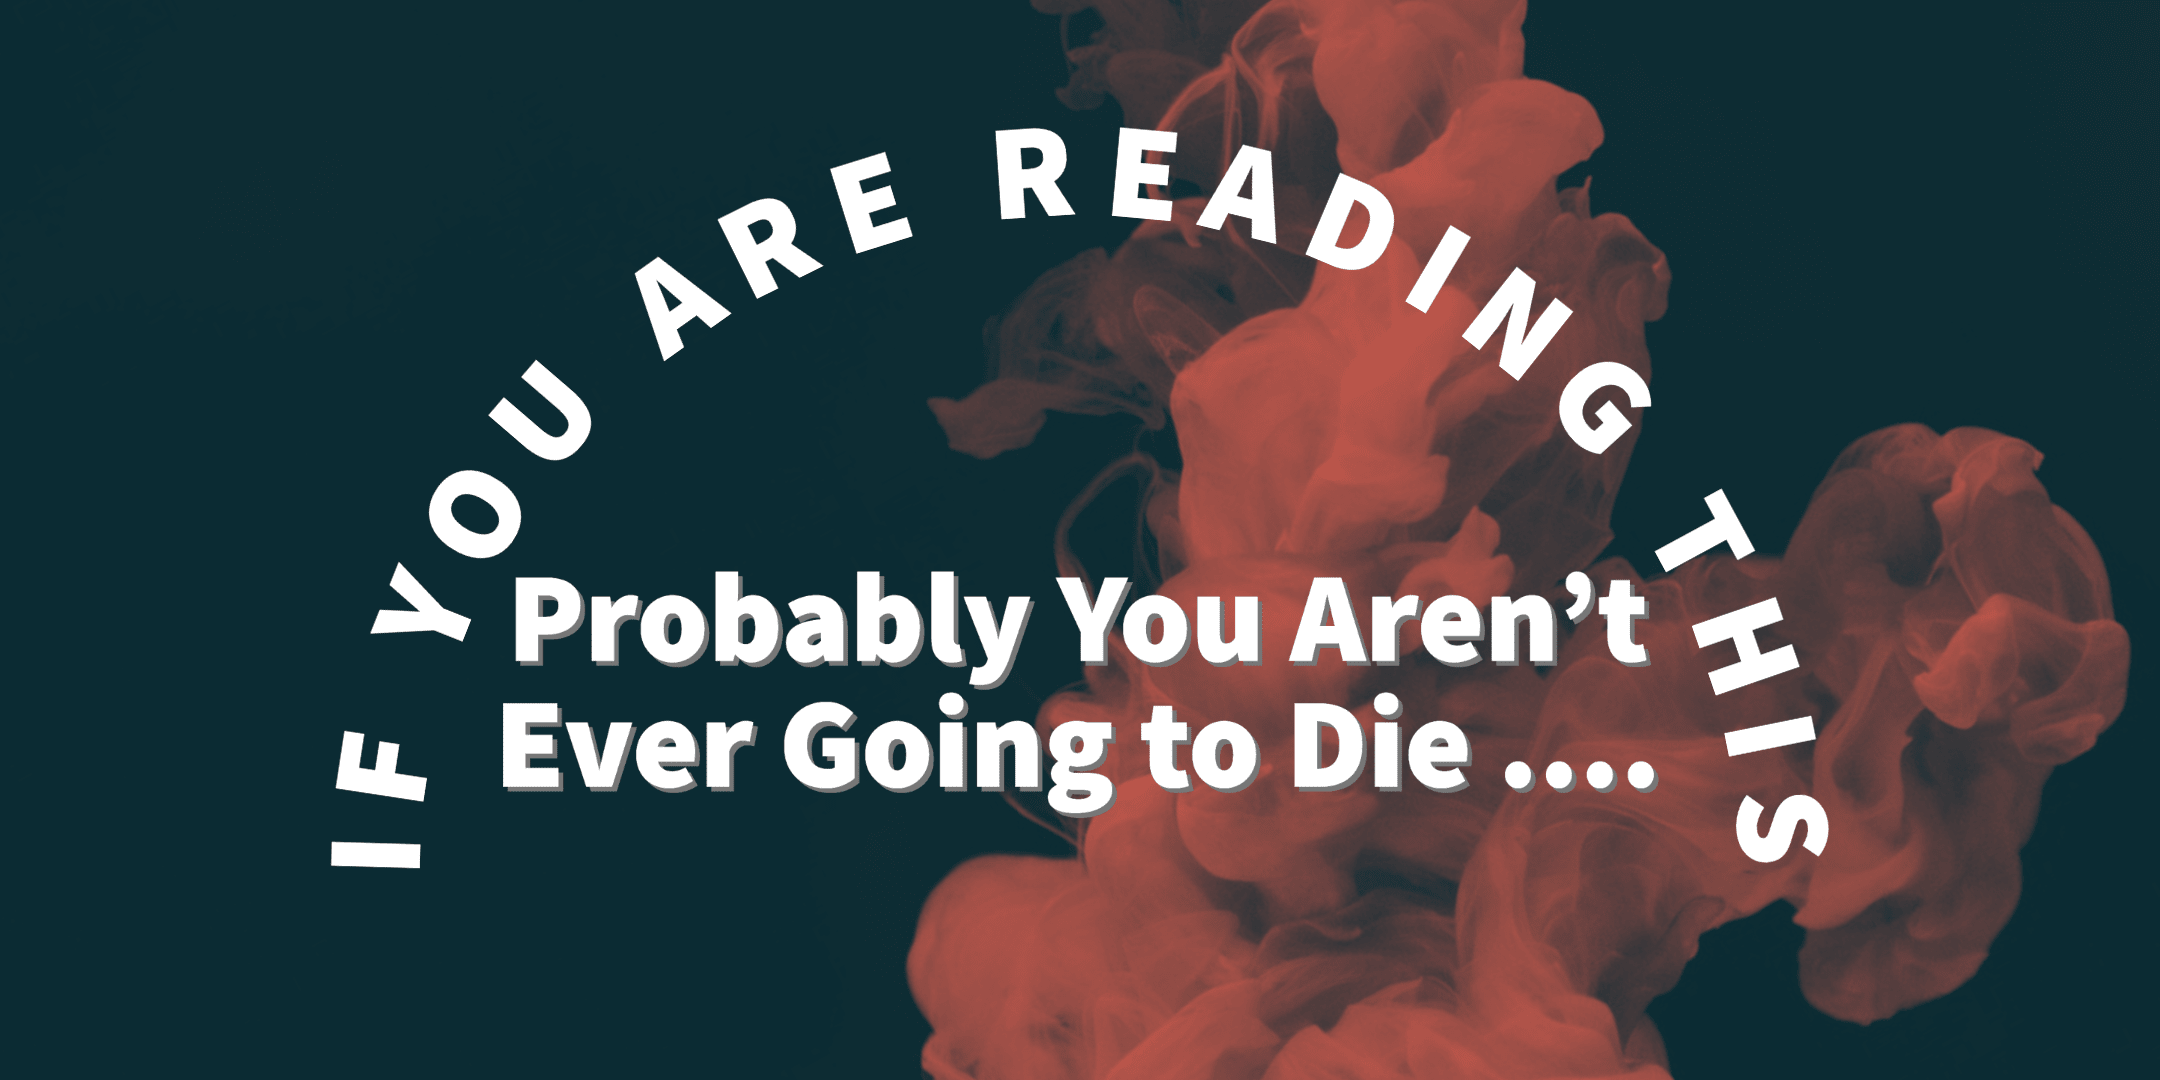 If You Are Reading This Probably You Aren't Ever Going to Die ...